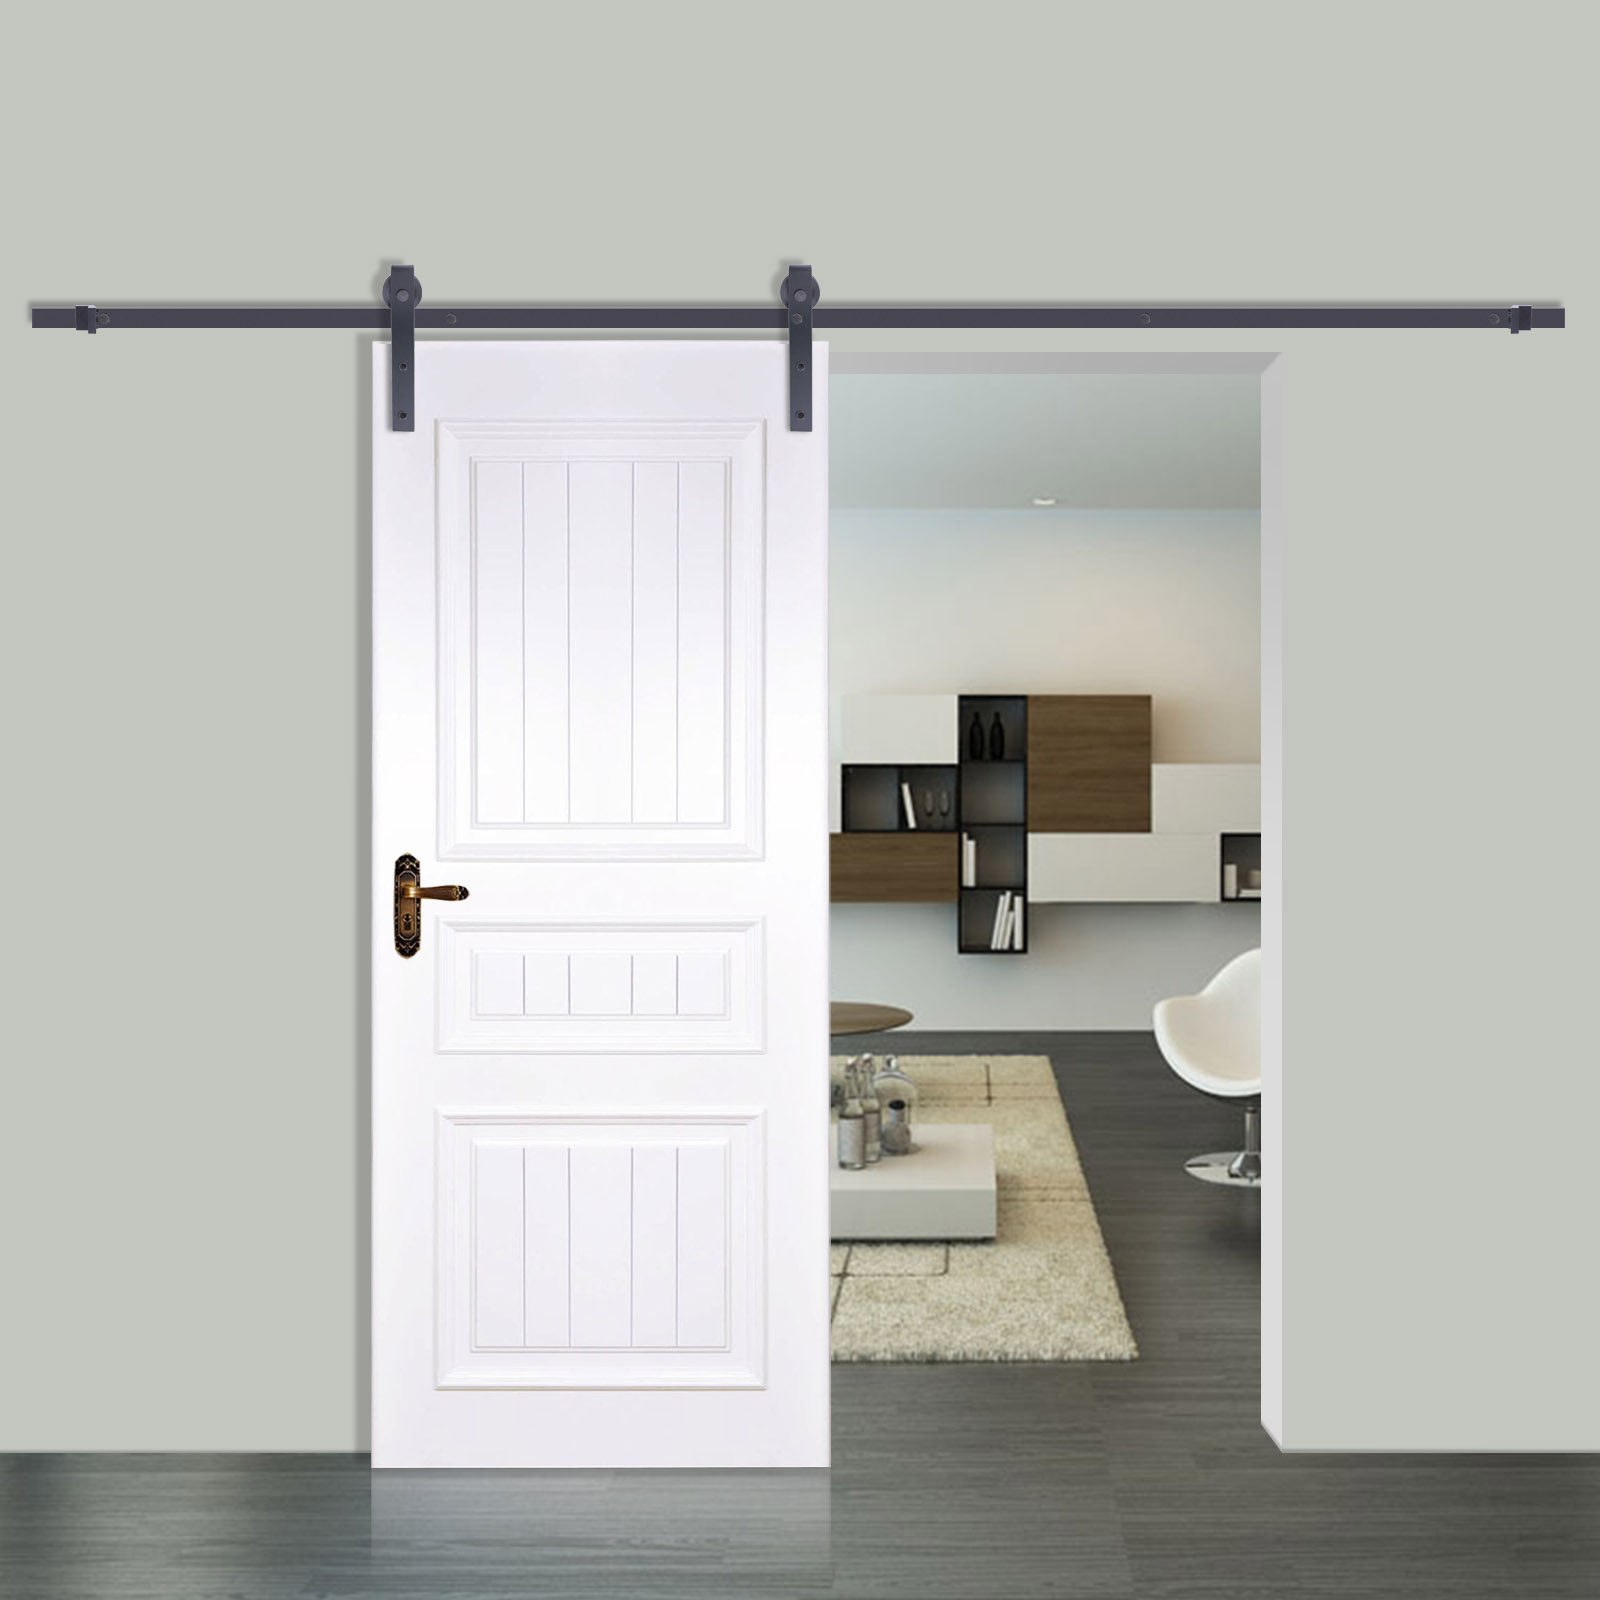 Wall mount sliding door hardware set - Black Carbon Steel Sliding Barn Door Hardware Track Rail Kit Wall Mount 4 Sizes Ebay